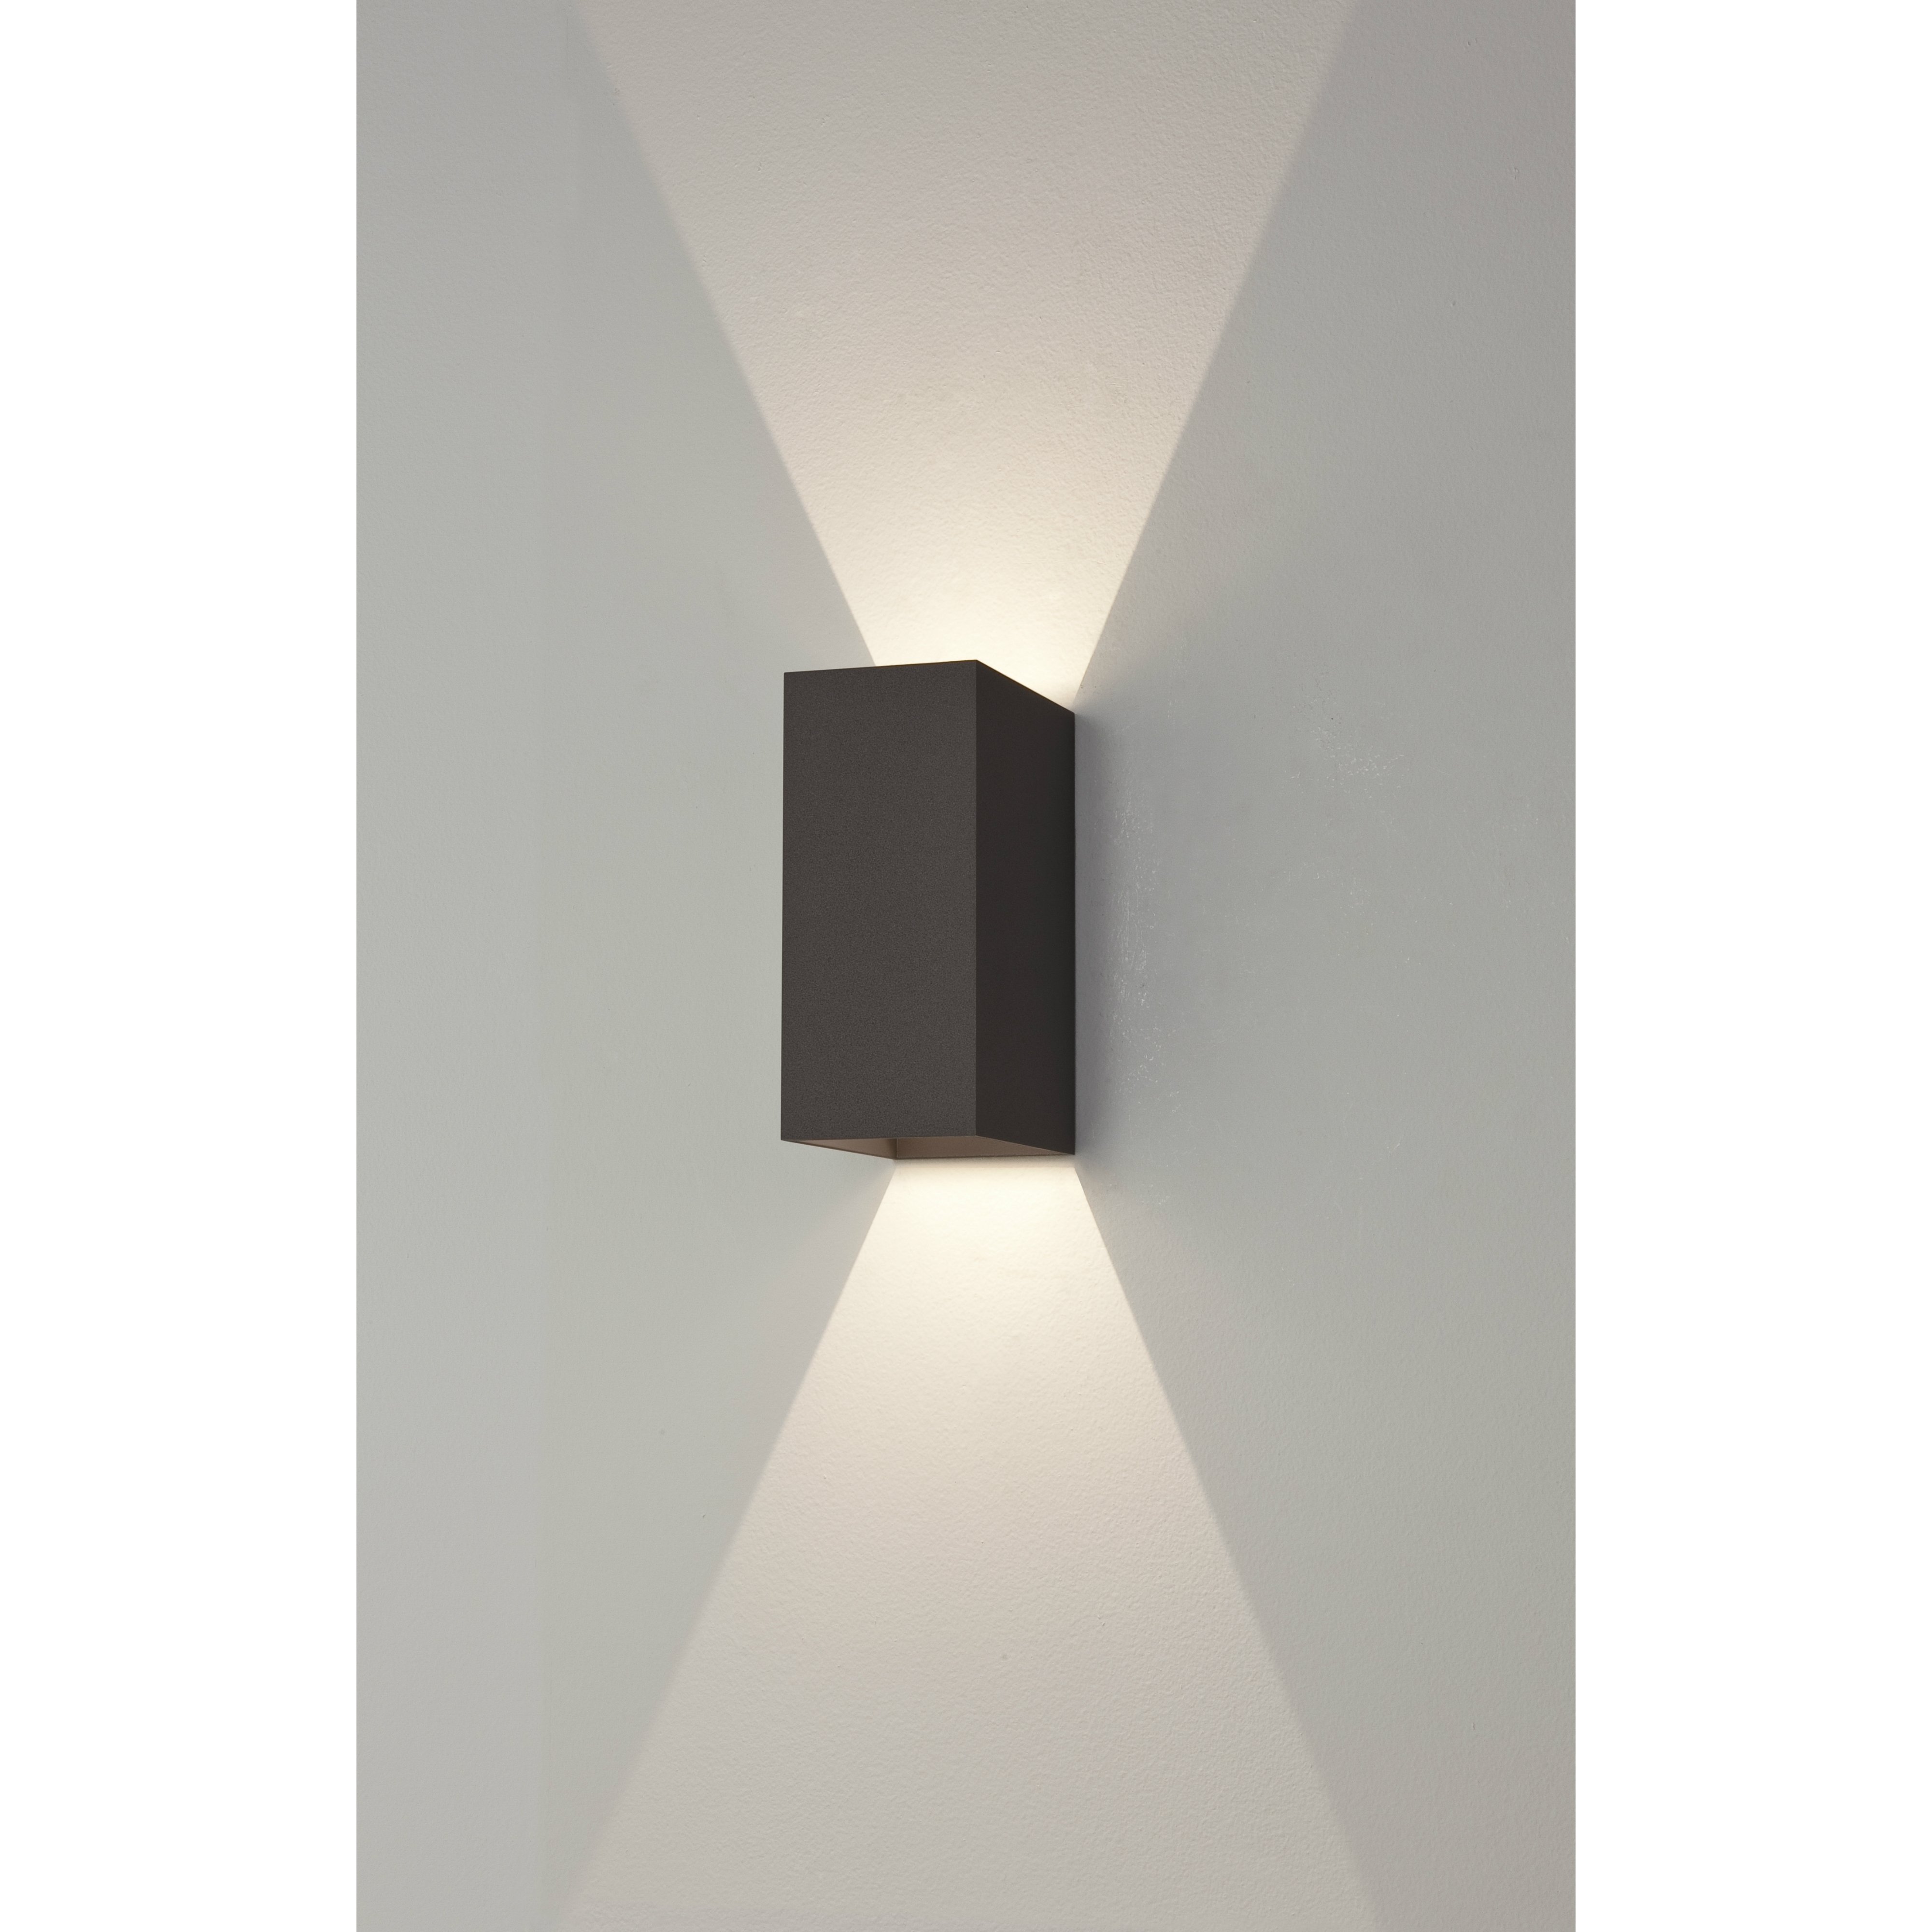 Well Liked Cheap Outdoor Wall Lighting Within Outdoor Corner Wall Lights Uk – Outdoor Designs (View 18 of 20)